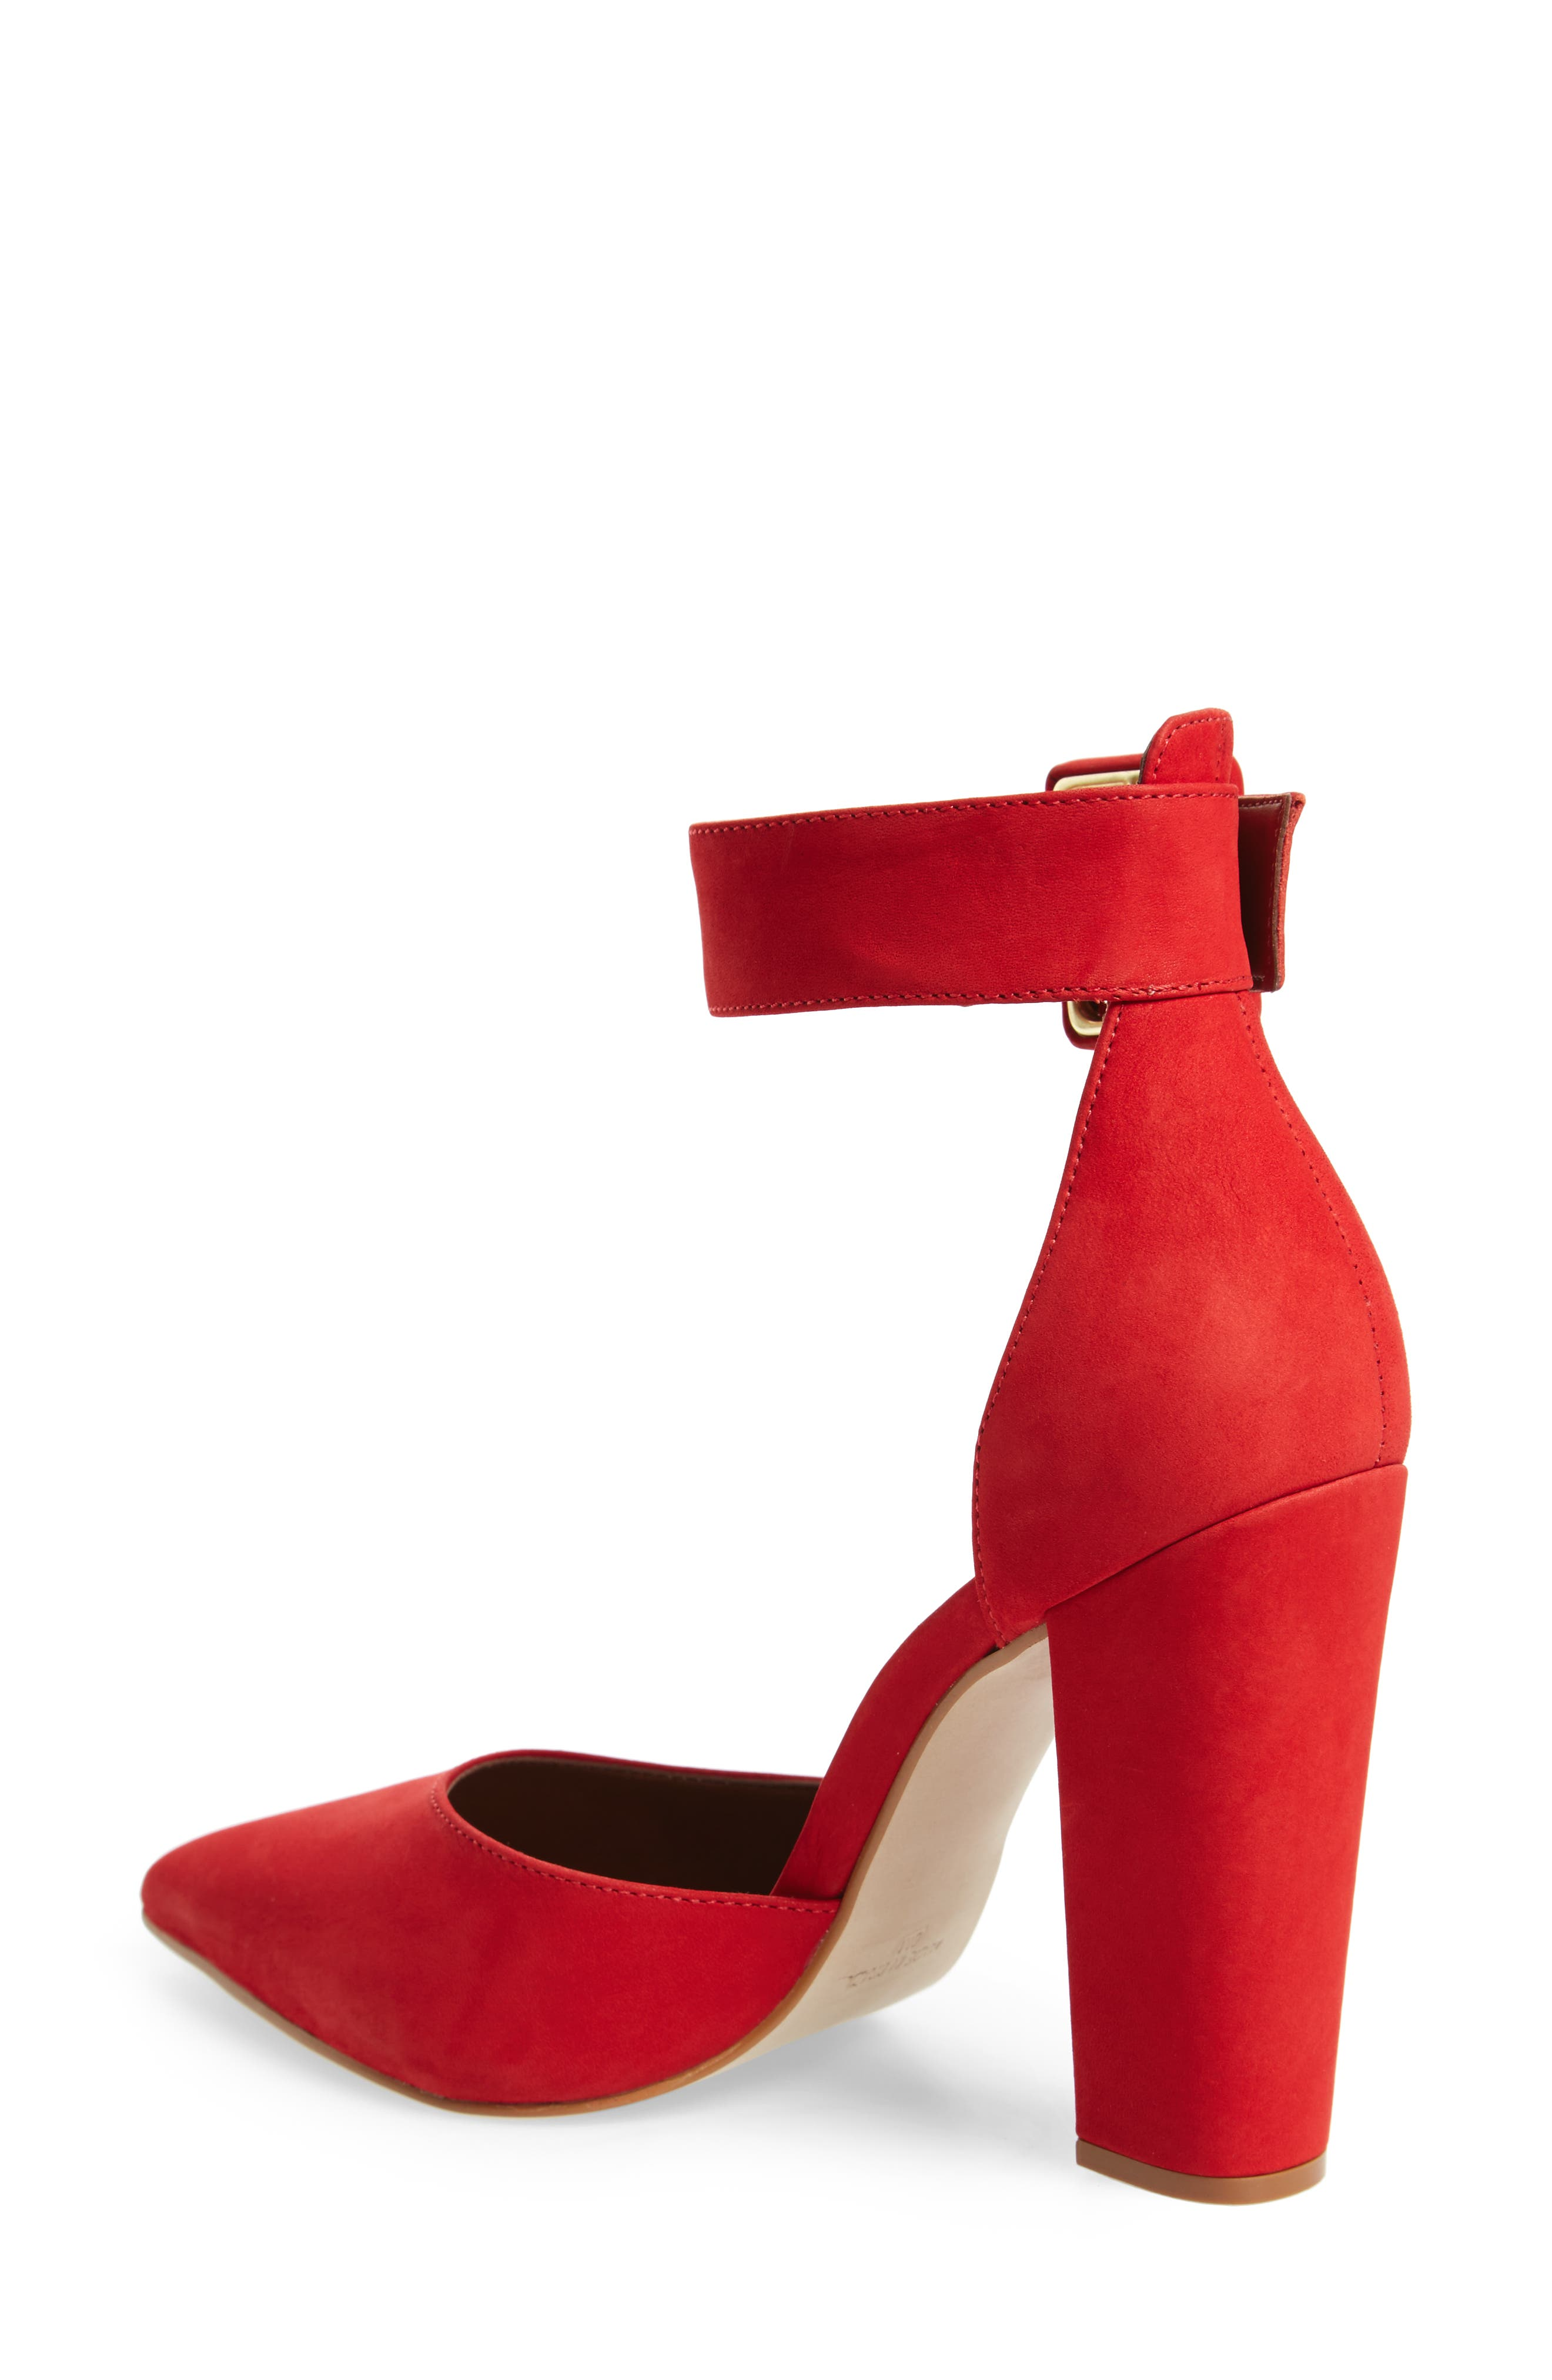 Posted Ankle Strap Pump,                             Alternate thumbnail 2, color,                             Red Nubuck Leather